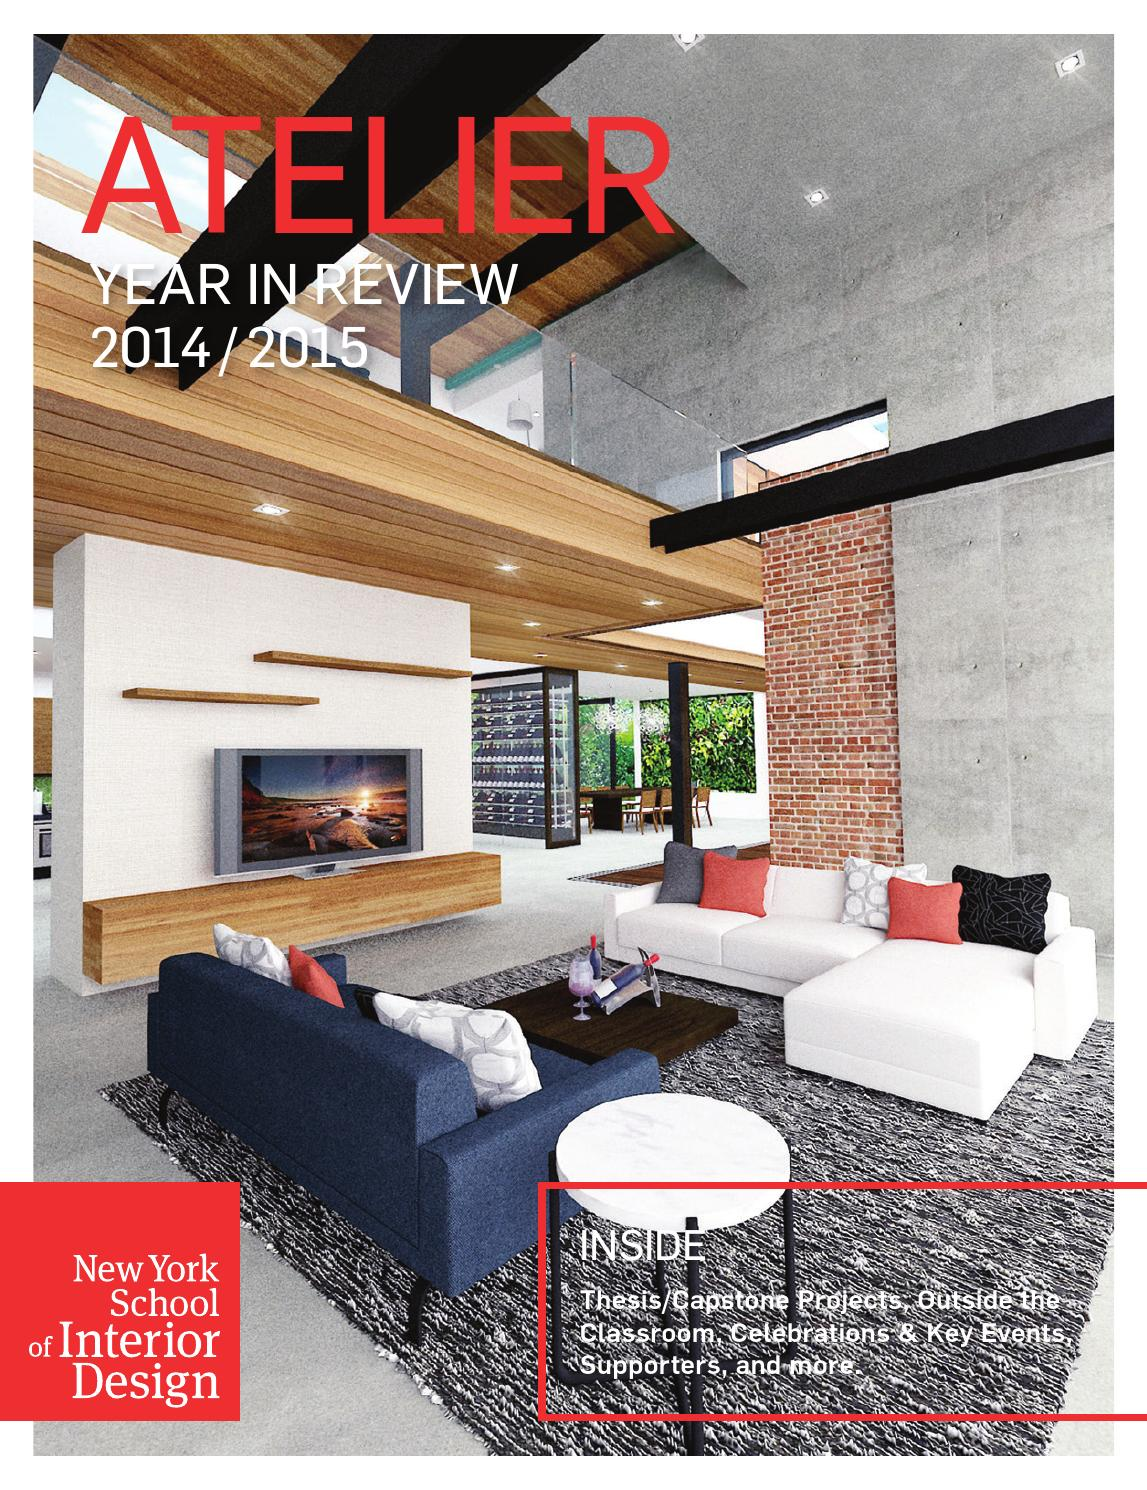 Atelier Seewhy Atelier Year In Review 2014 2015 By New York School Of Interior